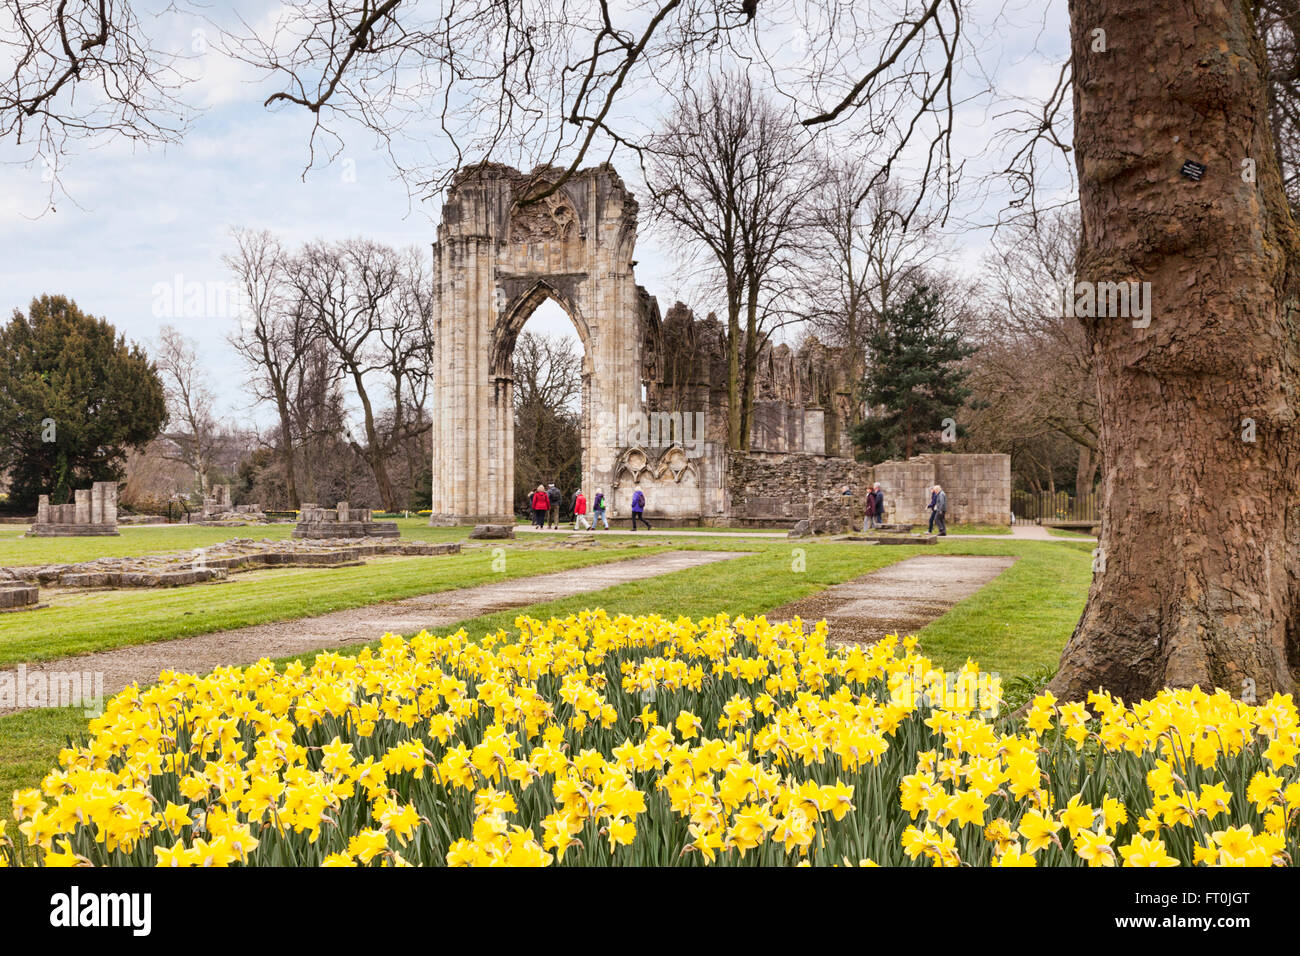 Group of tourists explore St Mary's Abbey, York, North Yorkshire, England, UK - Stock Image